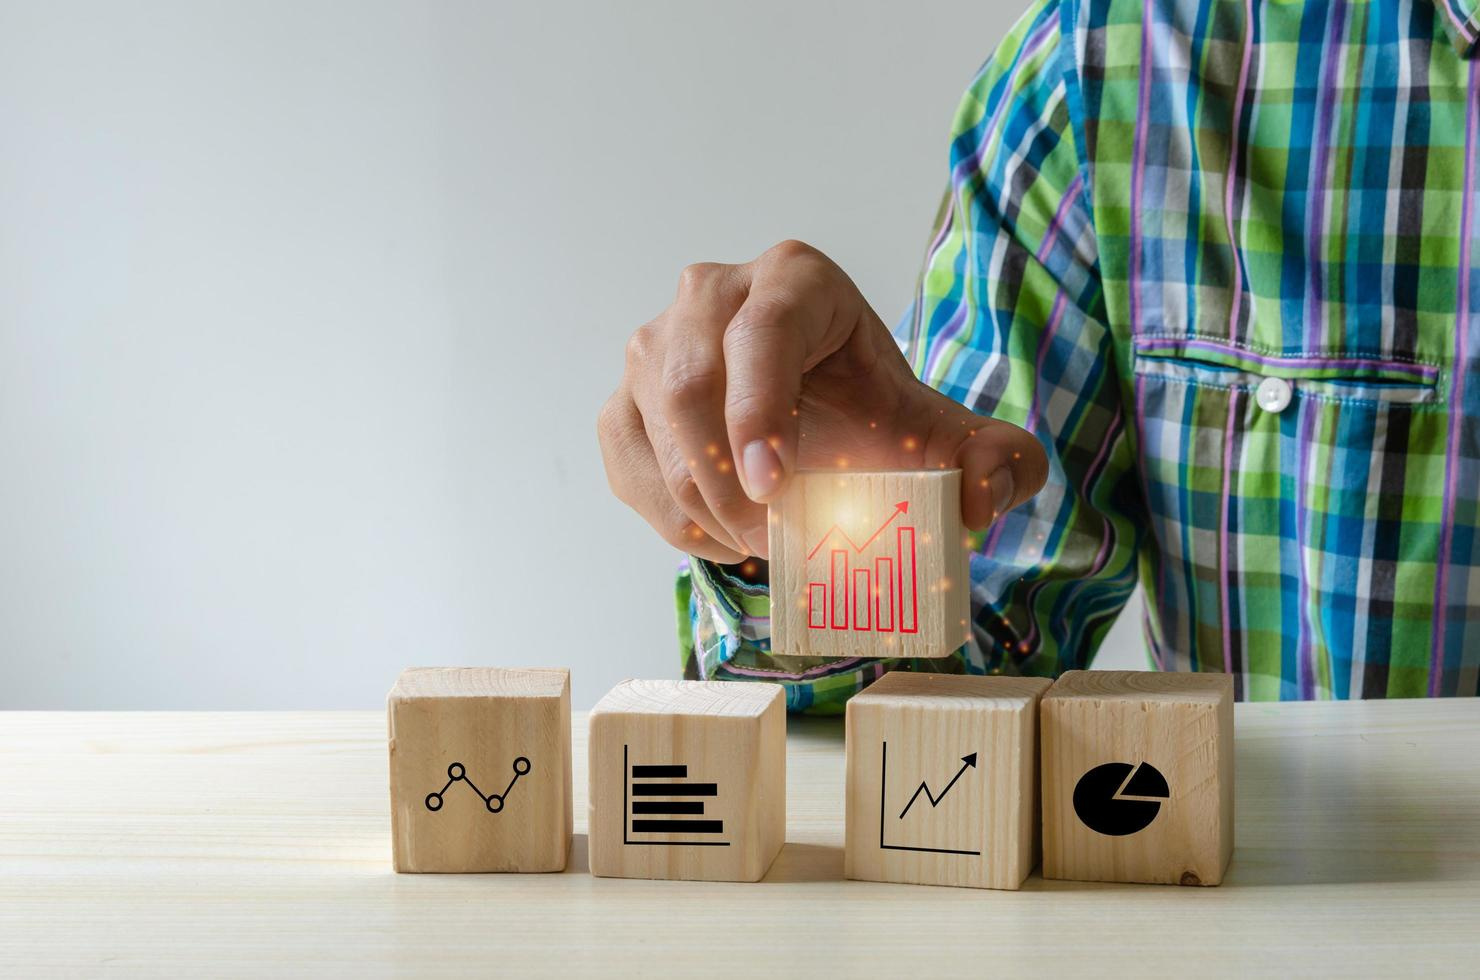 Hand stacking wooden blocks with business icons photo